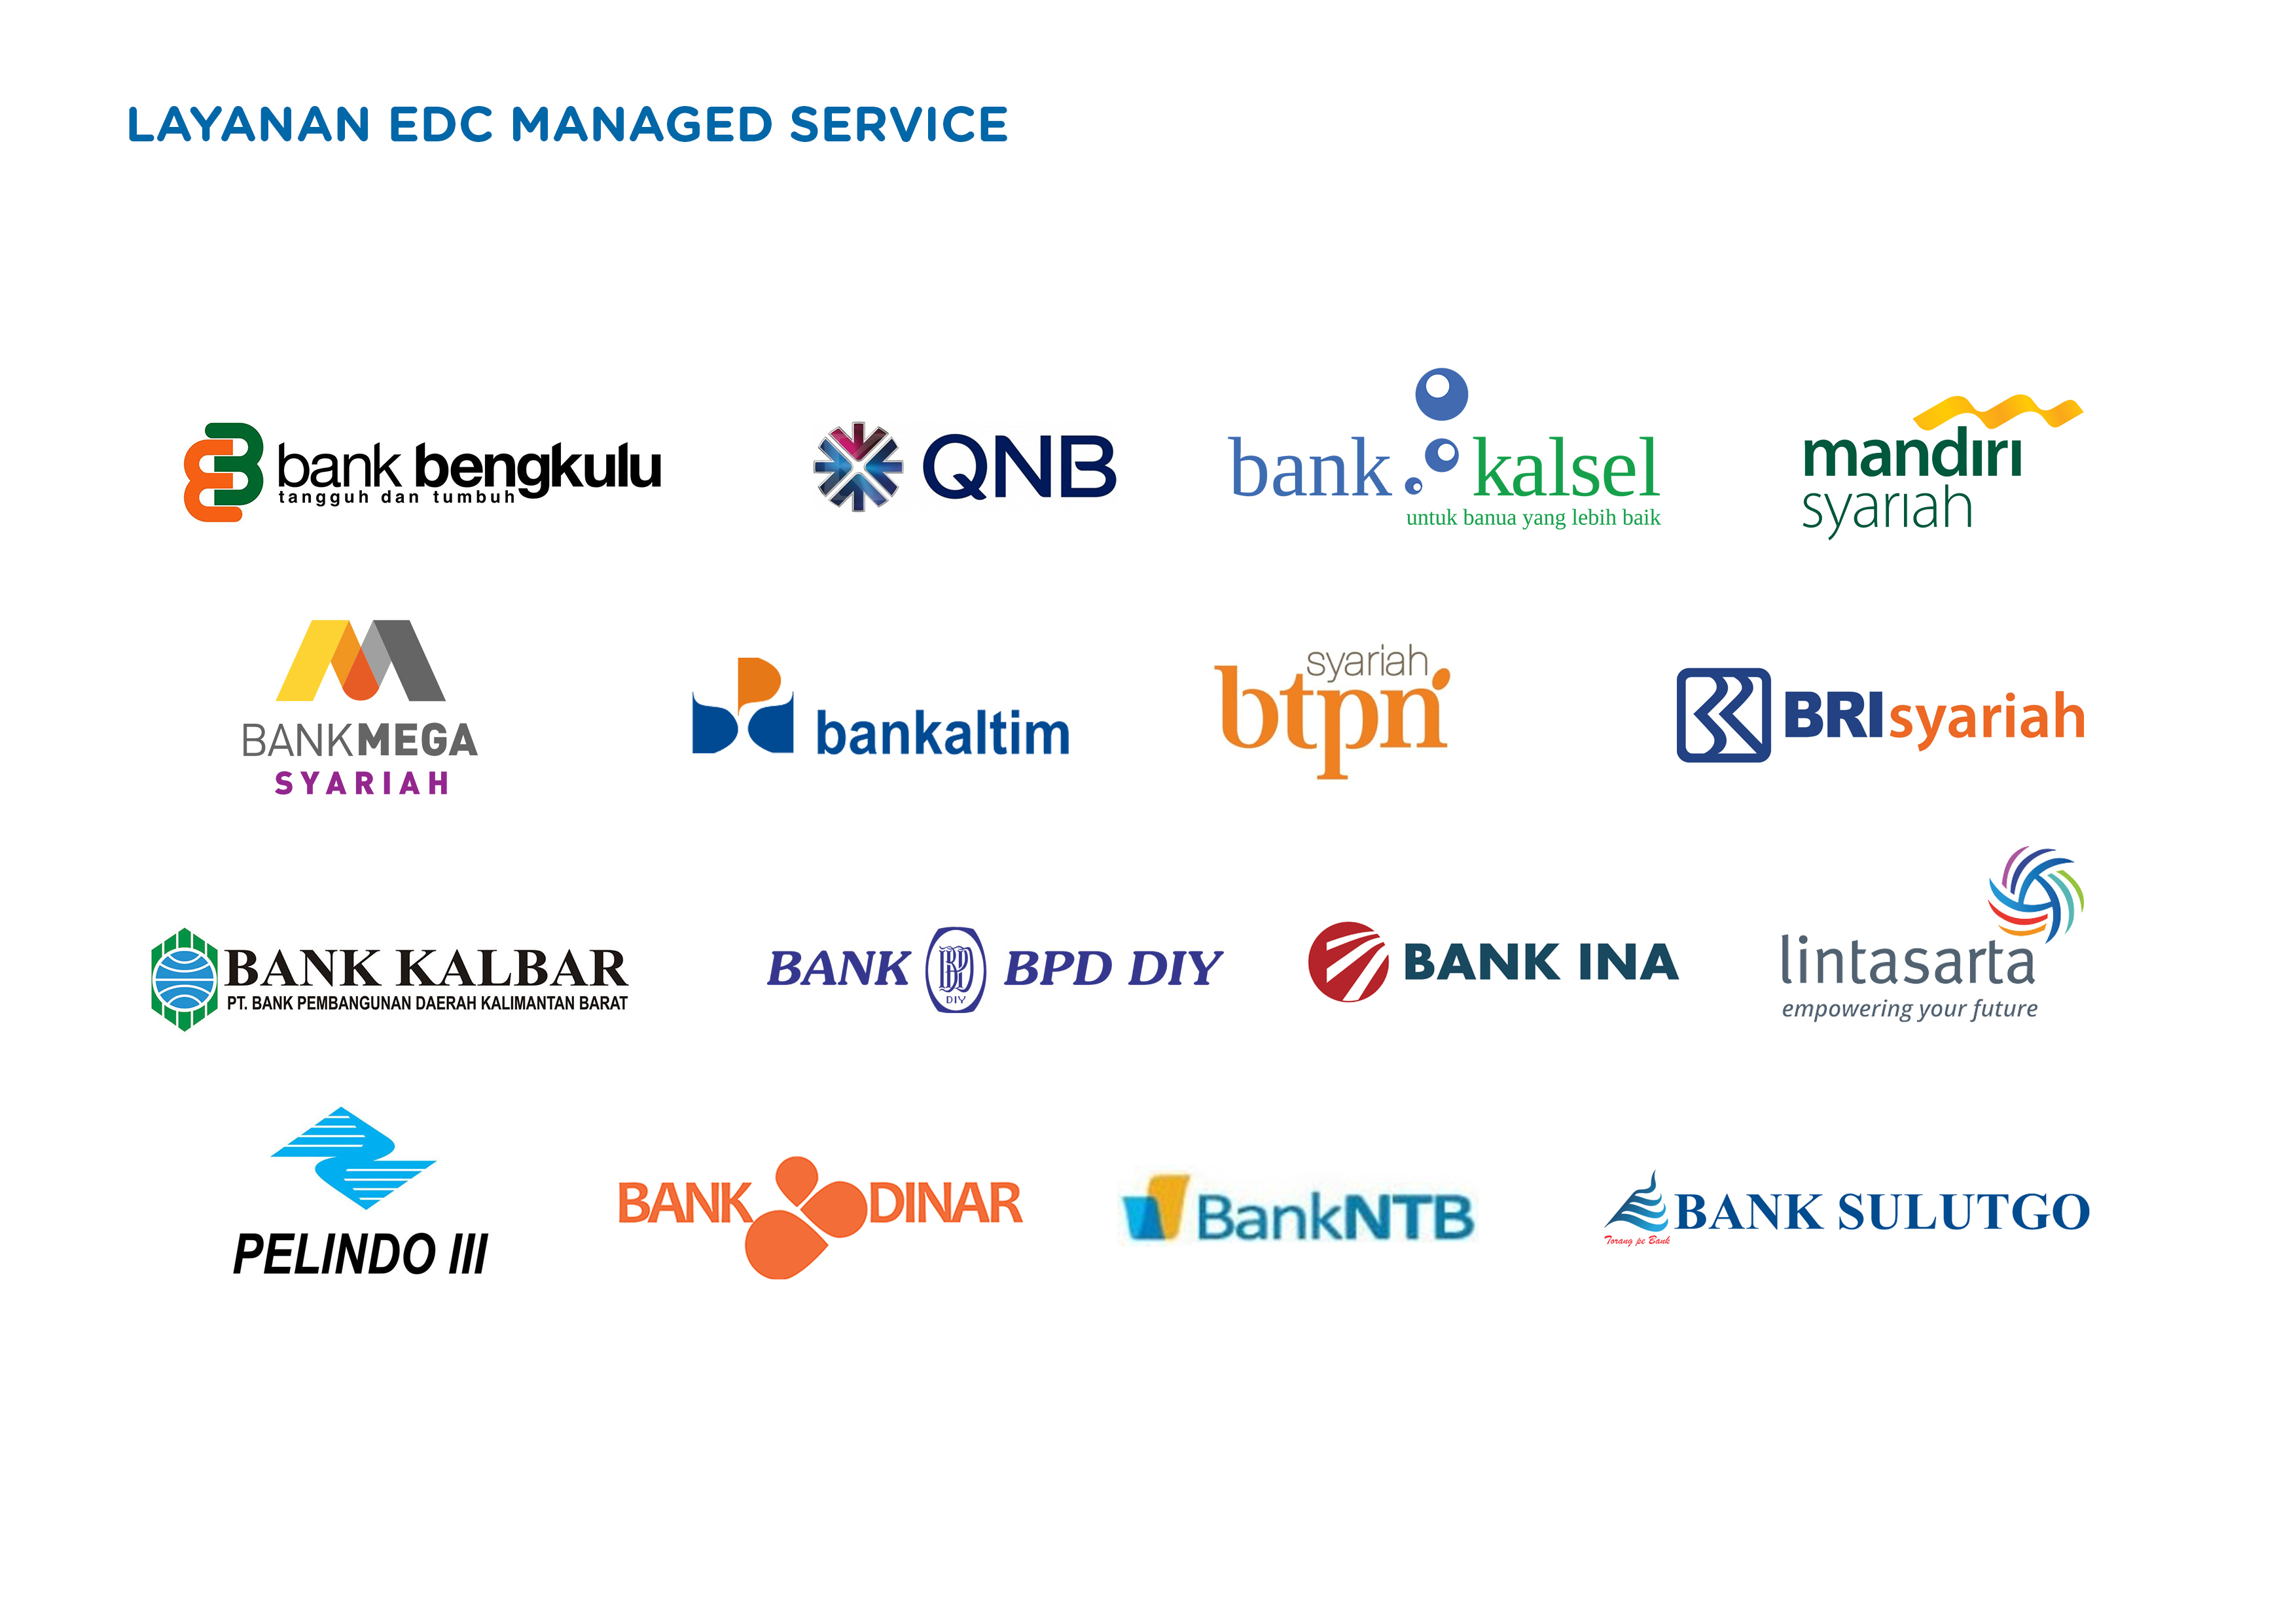 Layanan EDC Managed Service